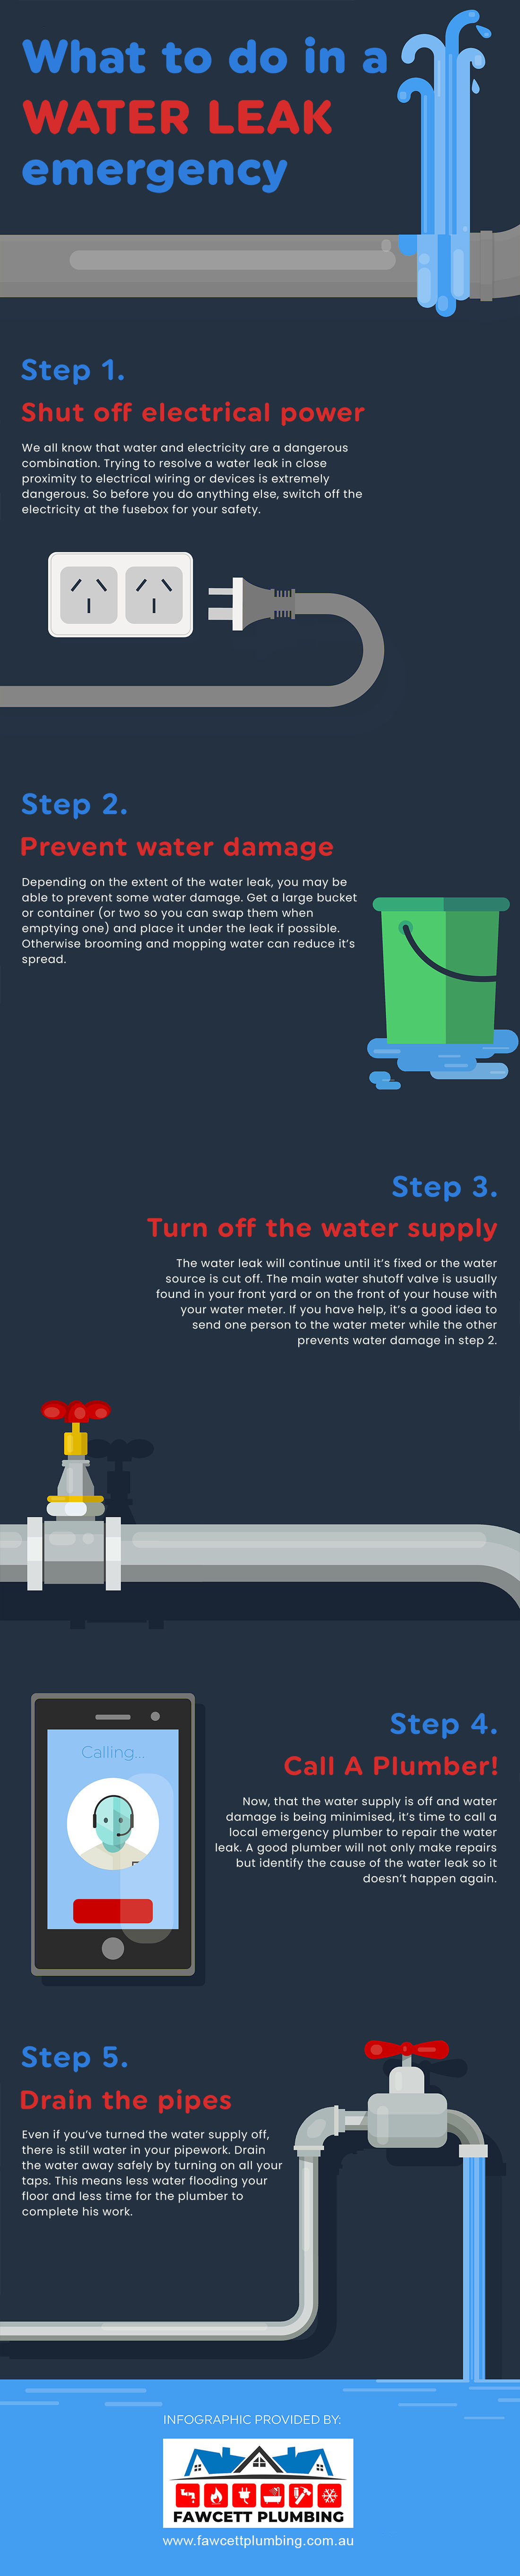 What To Do In A Water Leak Emergency Infographic